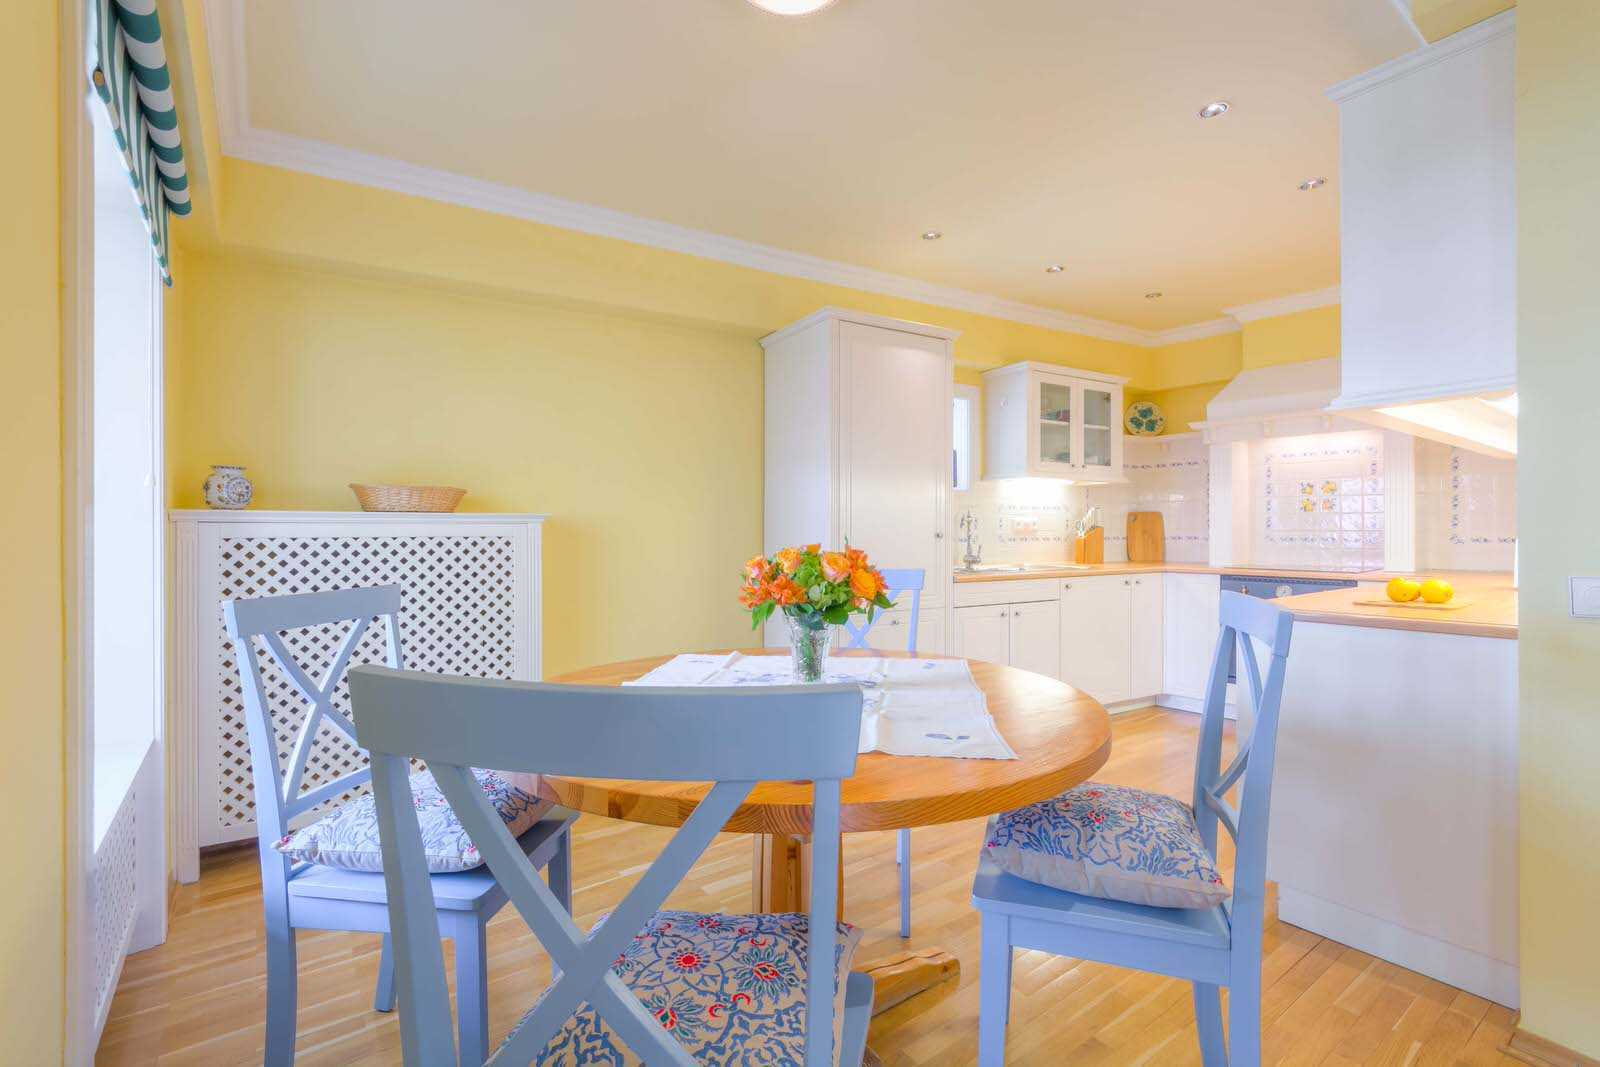 The kitchen has Mediterranean vibe with pastel yellow and blue colours.